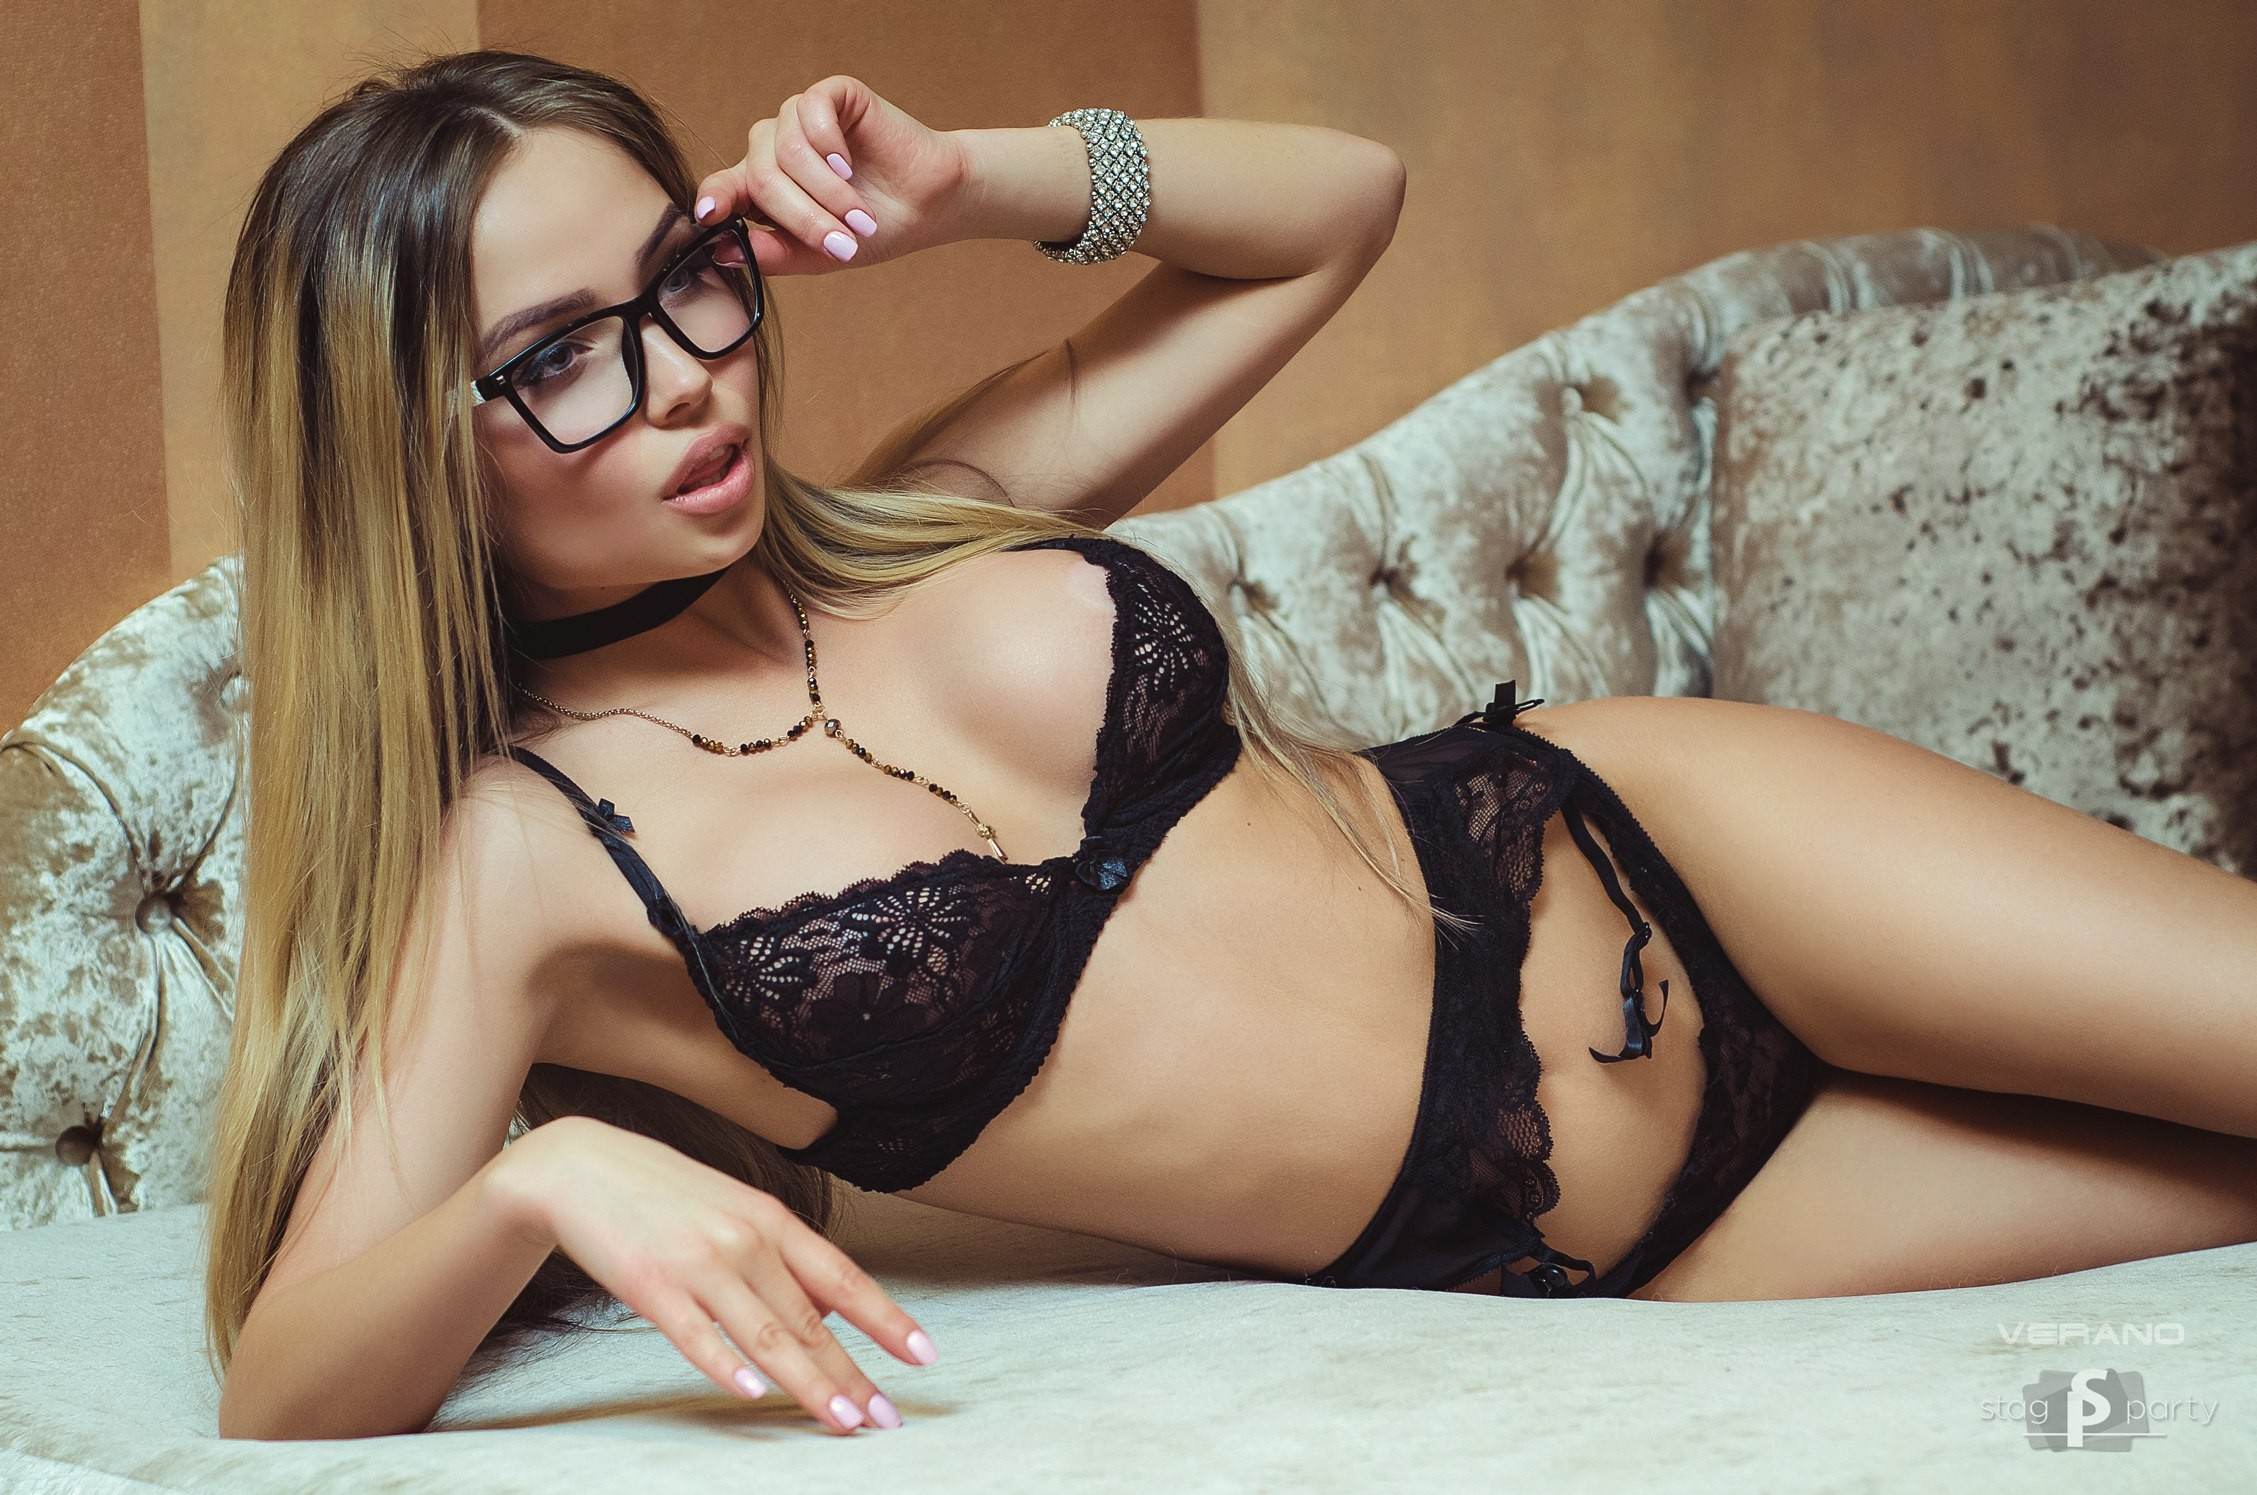 Download 2257x1495 natalia rachkovich, couch, black ...